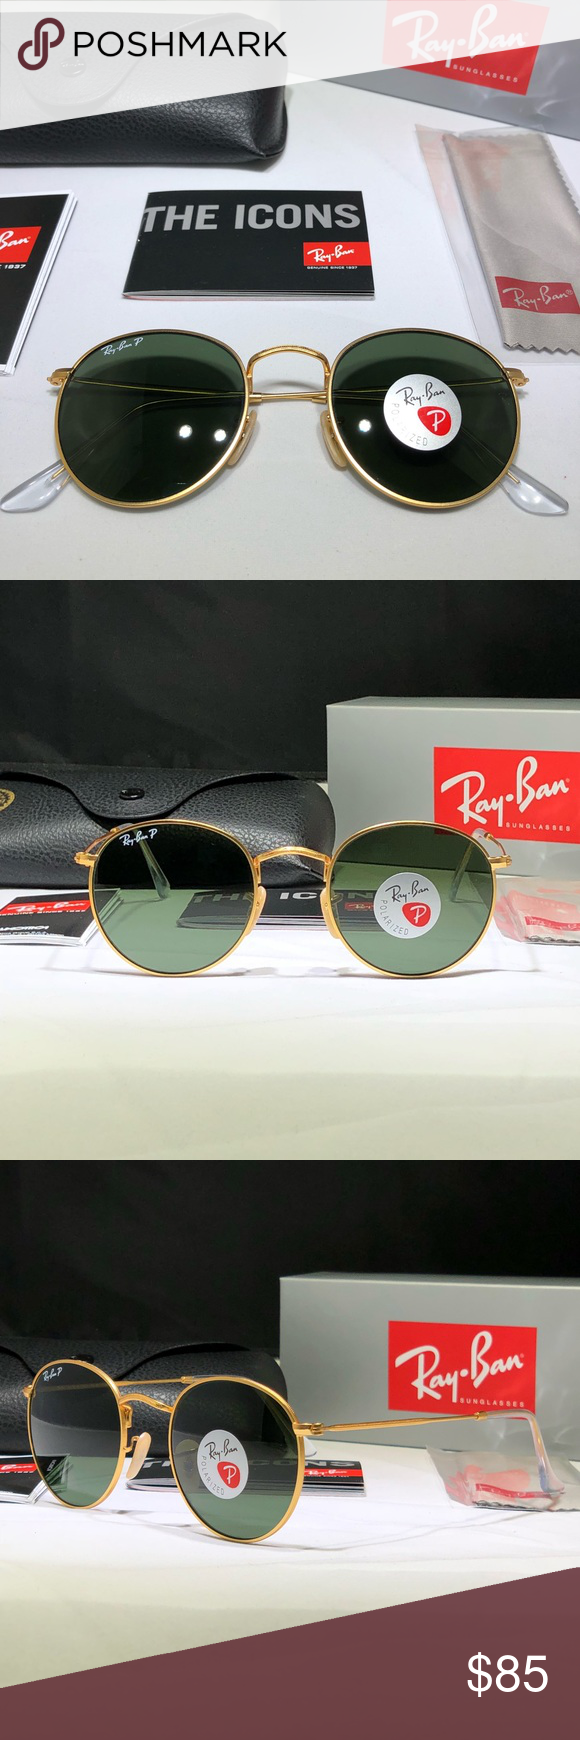 676a33a4156 Rayban 50mm Round Polarized Sunglasses NWT Original AUTHENTIC Rayban round  sunglasses. Matte gold frame with